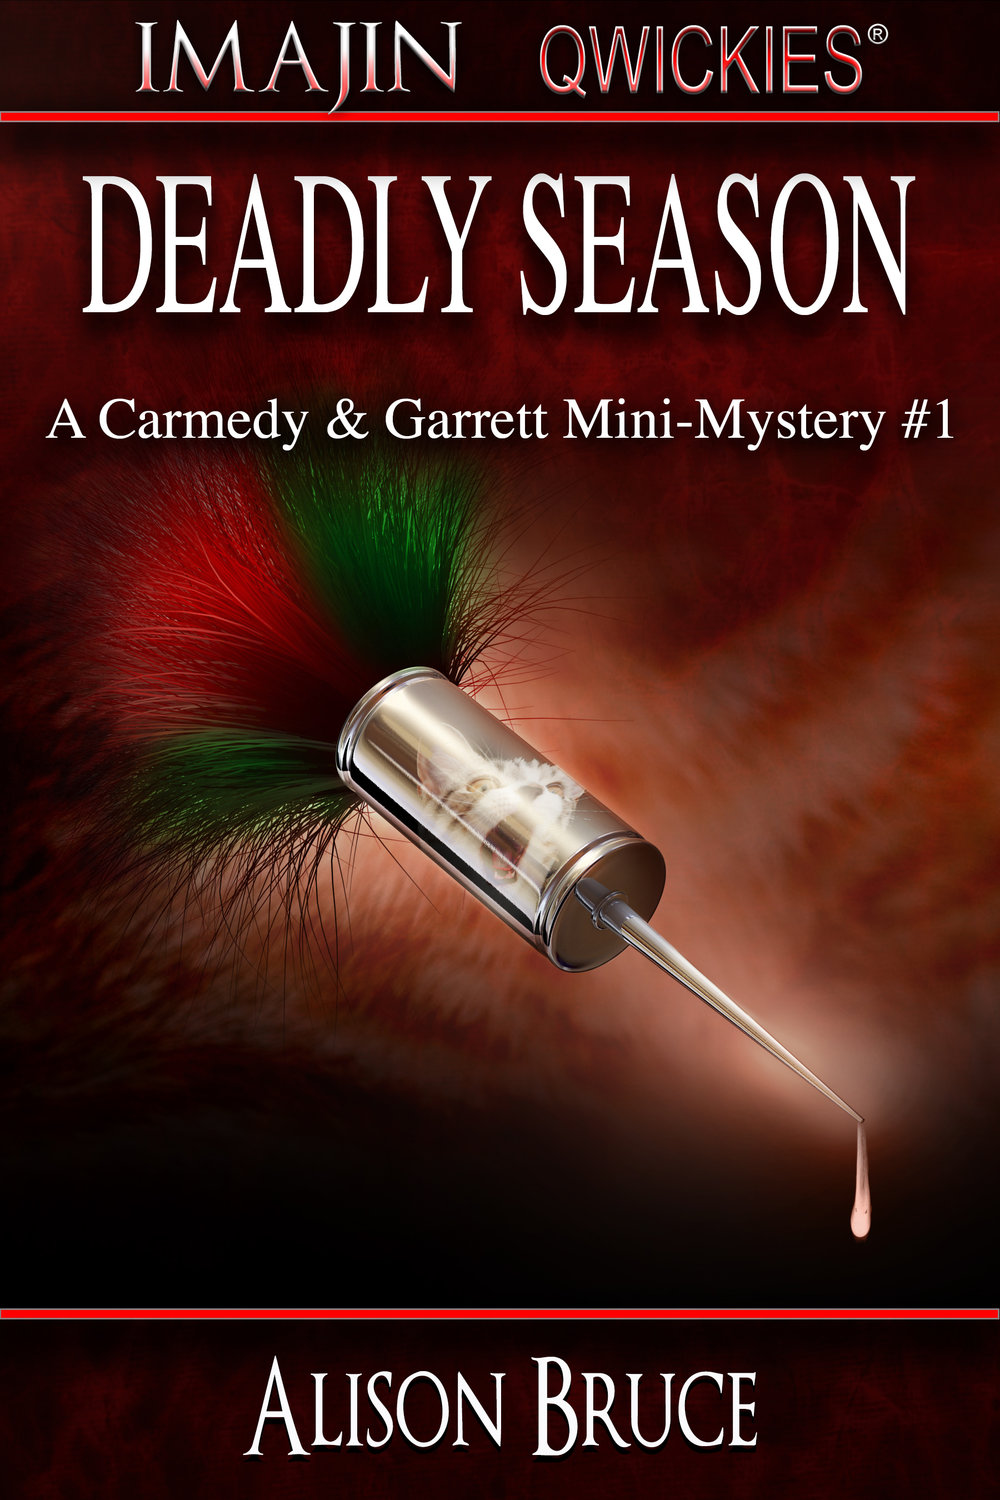 Deadly Season by Alison Bruce